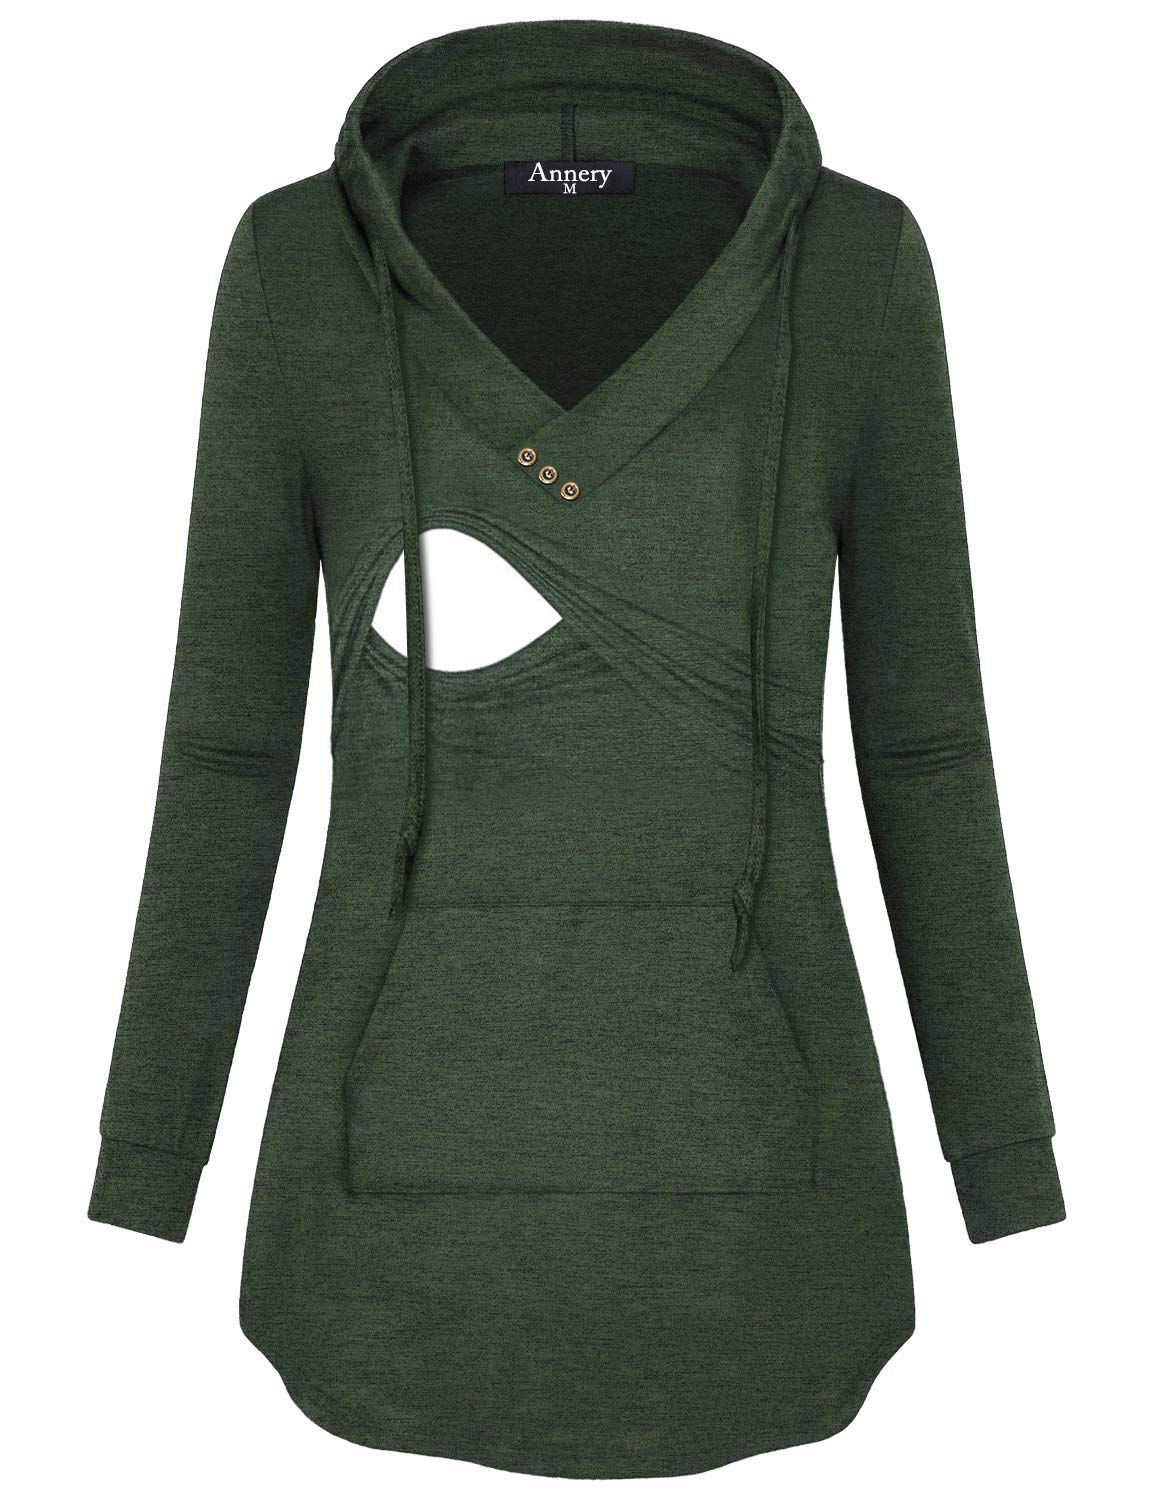 Annery Latched Mama, Ladies Loose Knitting Hoodie Maternity Nursing and Pumping Fall Sweater Breathable Soft Simple Style Tops with Kangaroo Pocket(Green,X-Large)